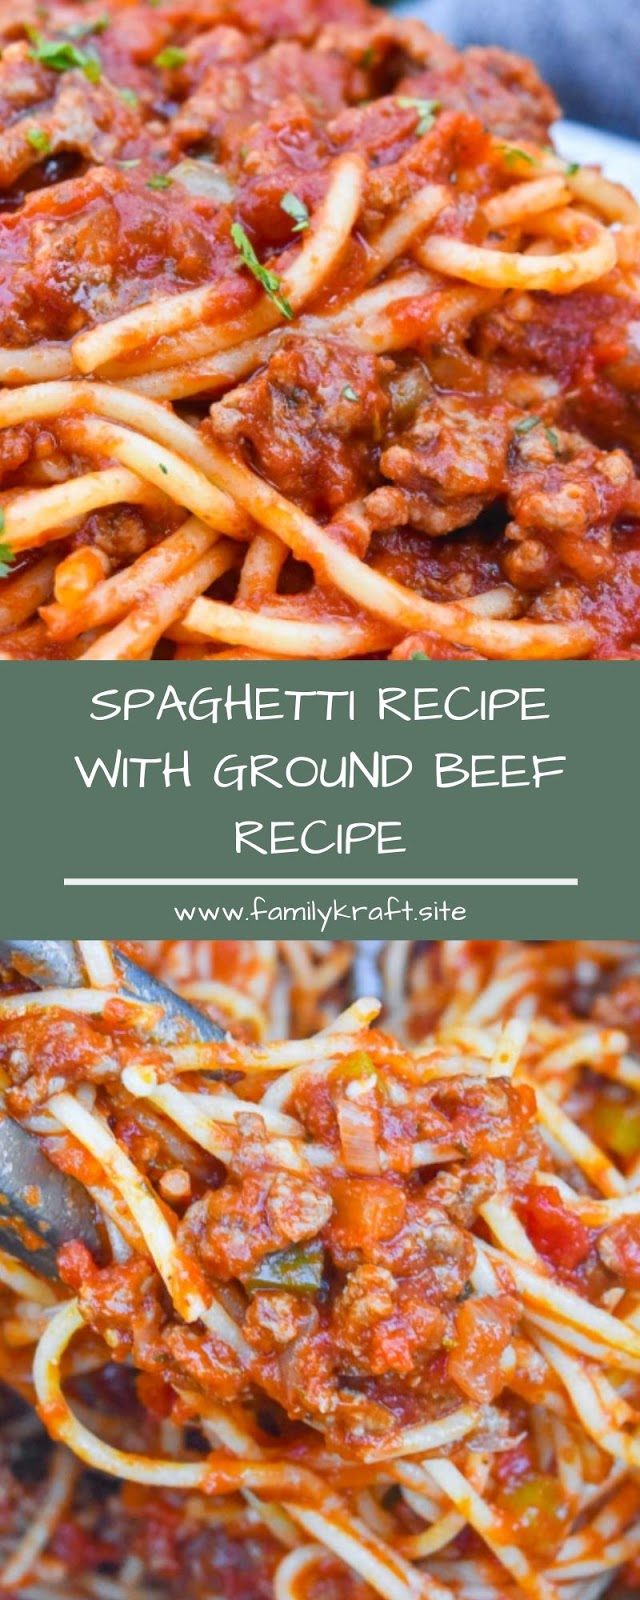 SPAGHETTI RECIPE WITH GROUND BEEF RECIPE